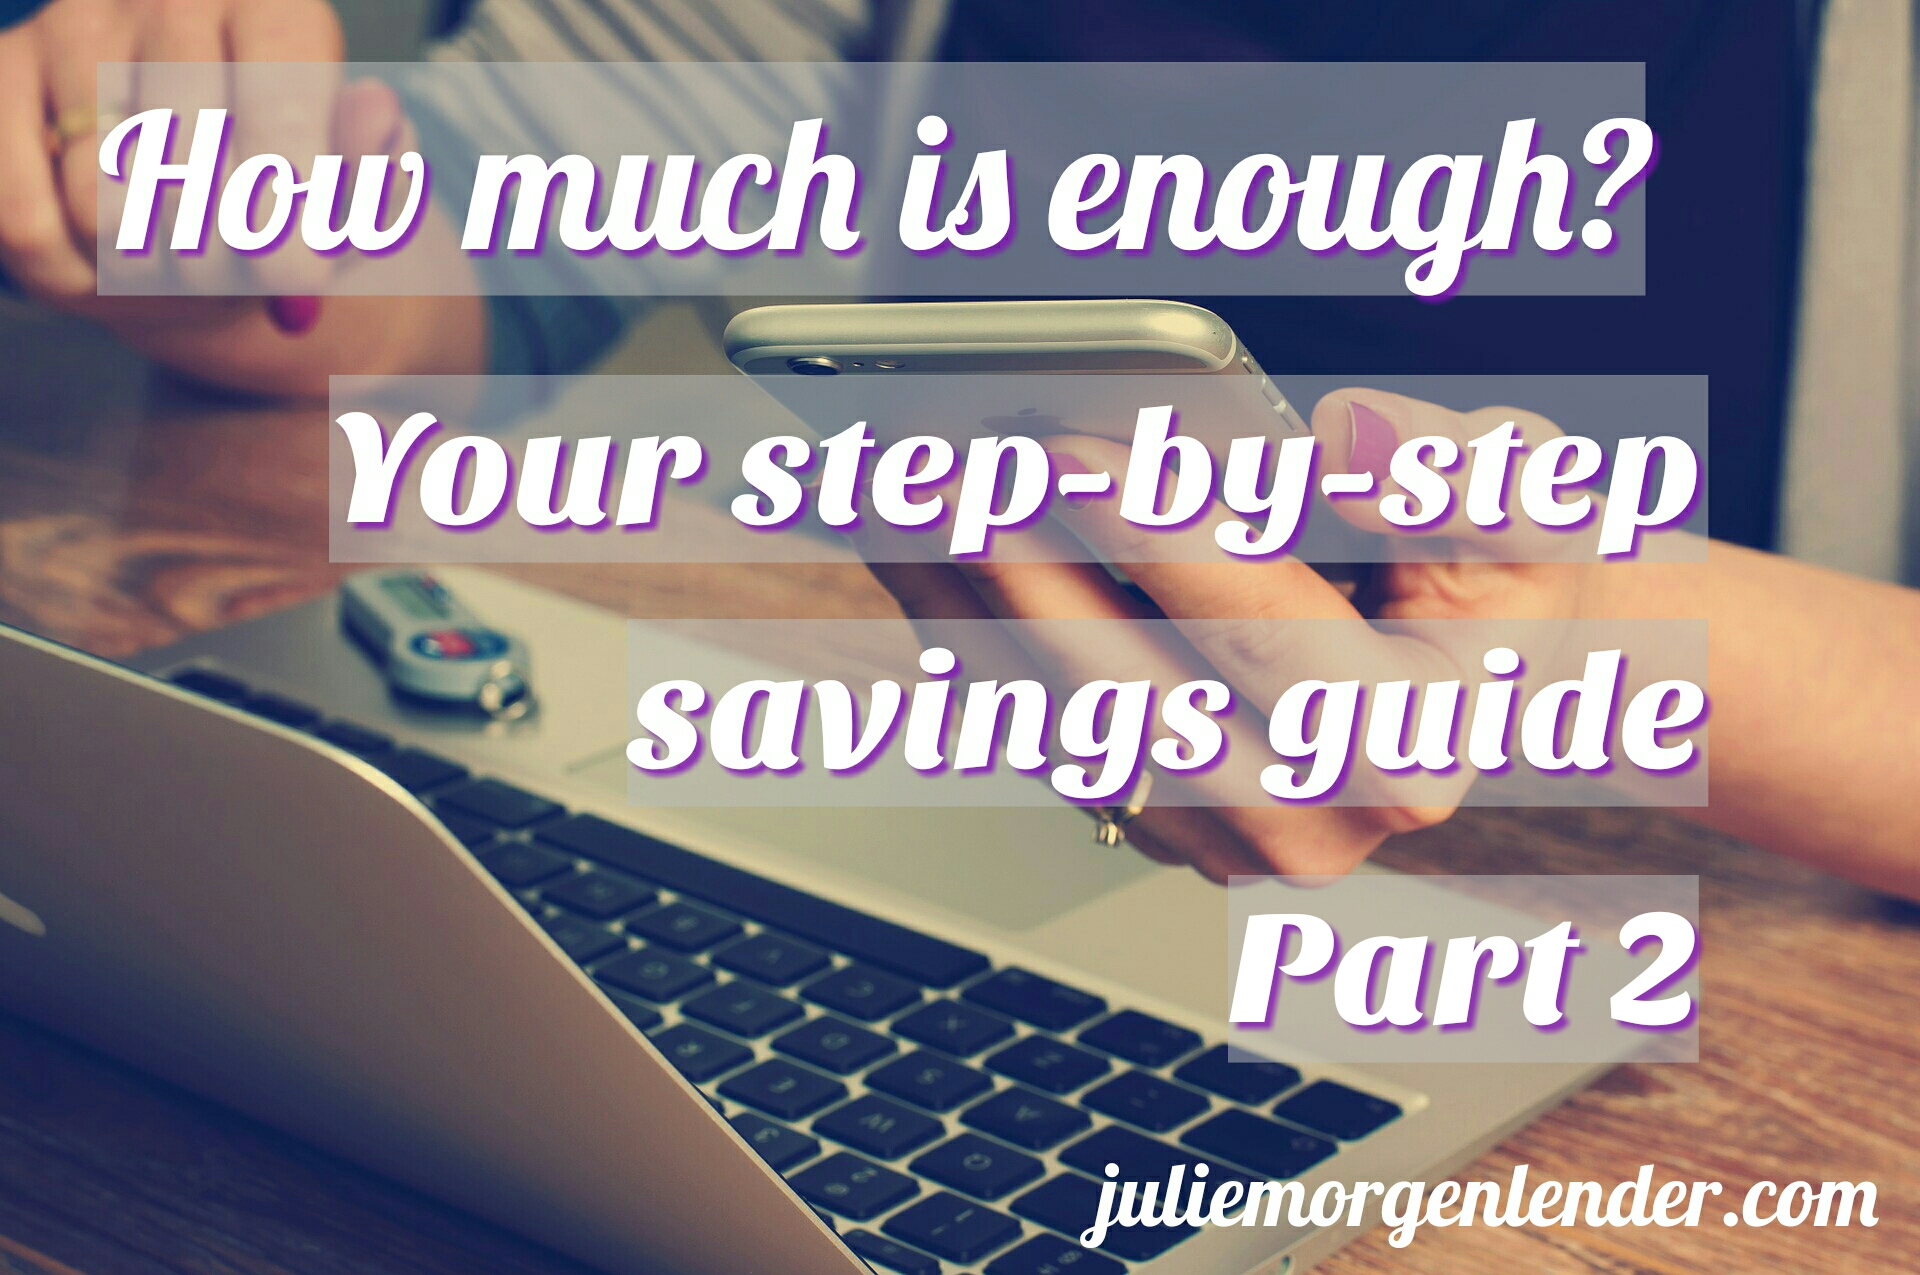 How much is enough: Your step-by-step savings guide Part 2